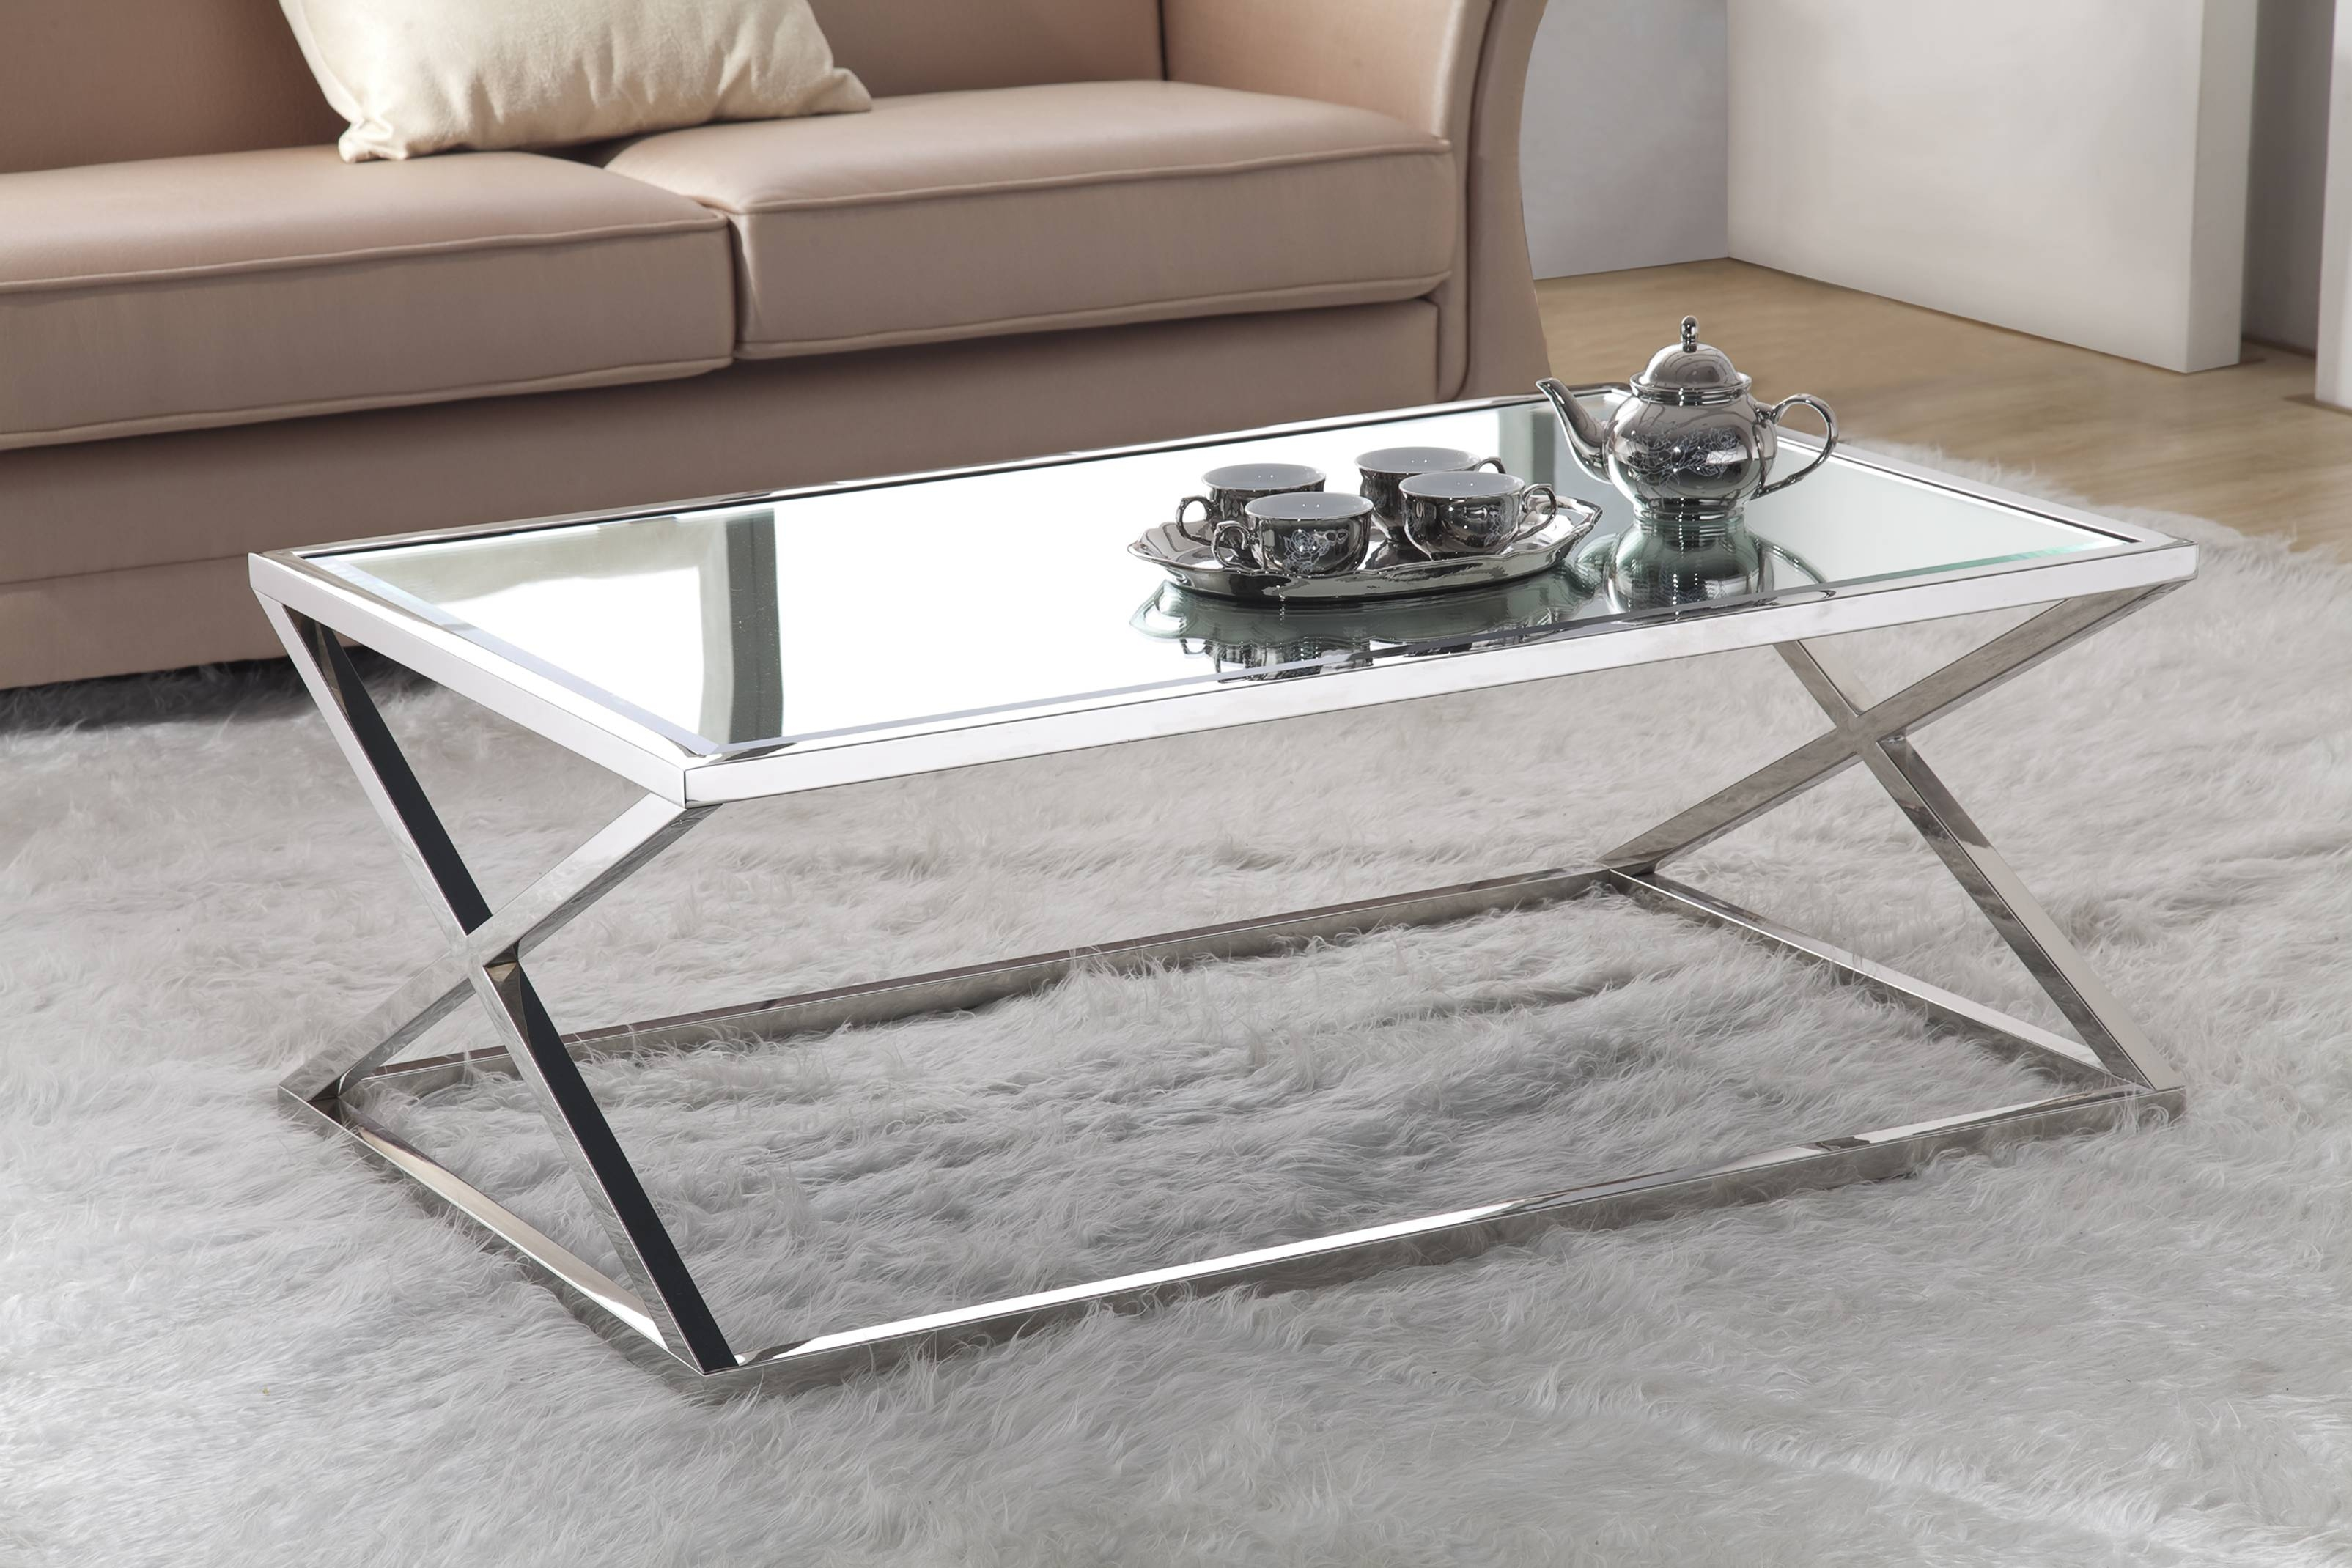 Unique And Stylish Steel Coffee Table – Steel Coffee Table Base in Stylish Coffee Tables (Image 30 of 30)